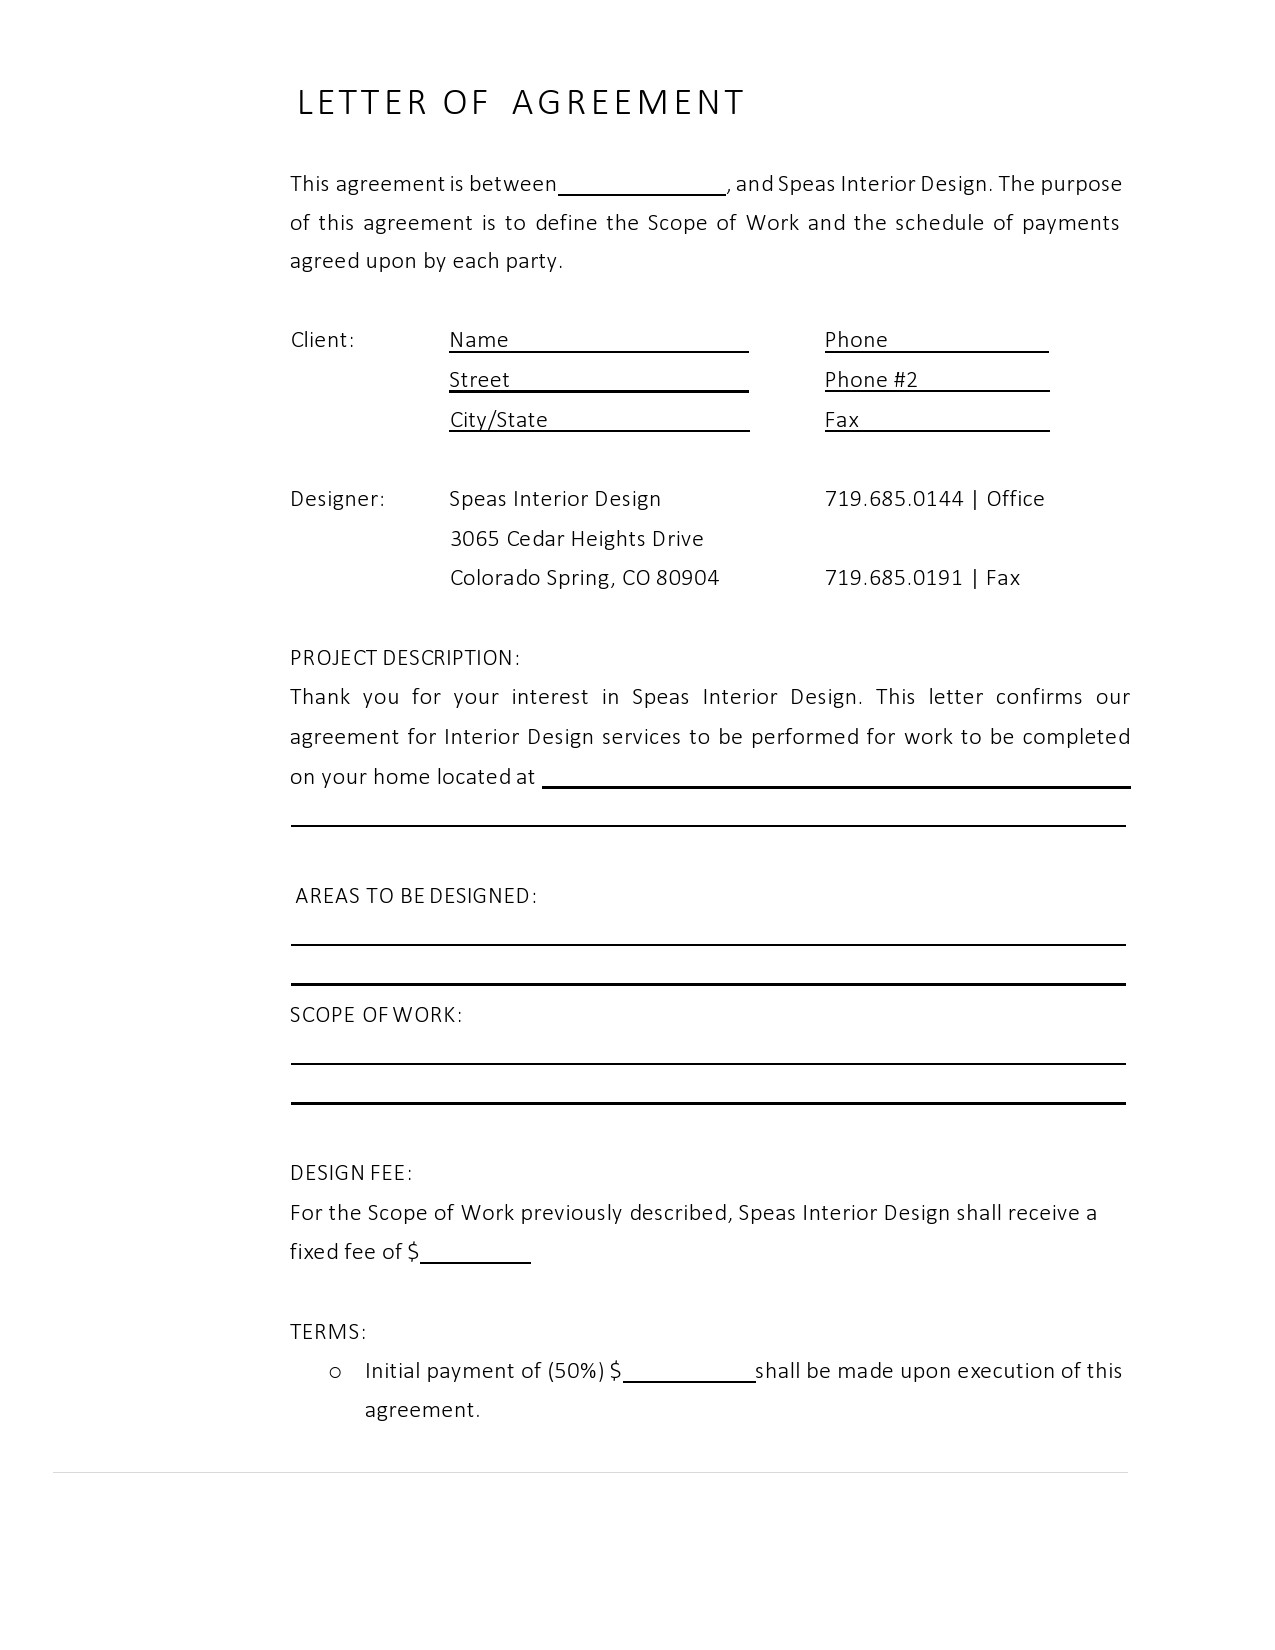 Free letter of agreement 01